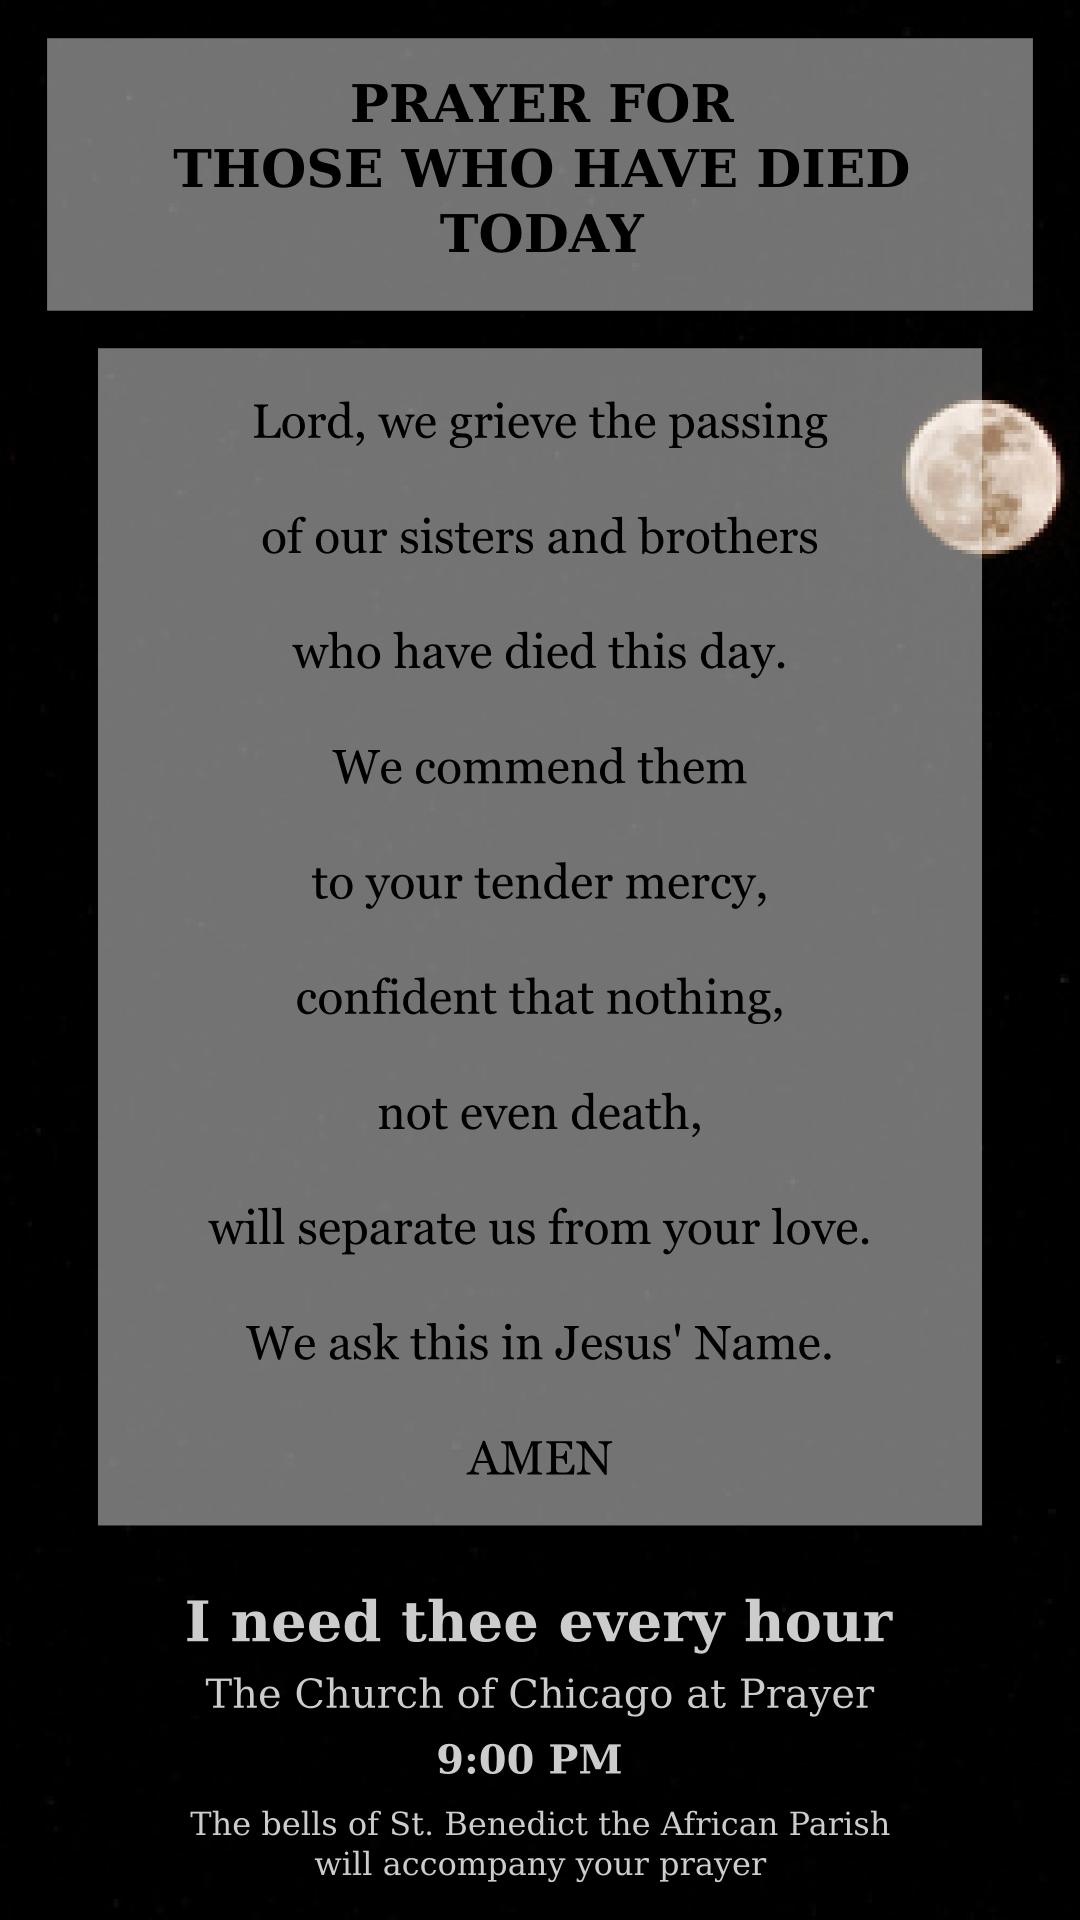 Prayer card for those who have died today